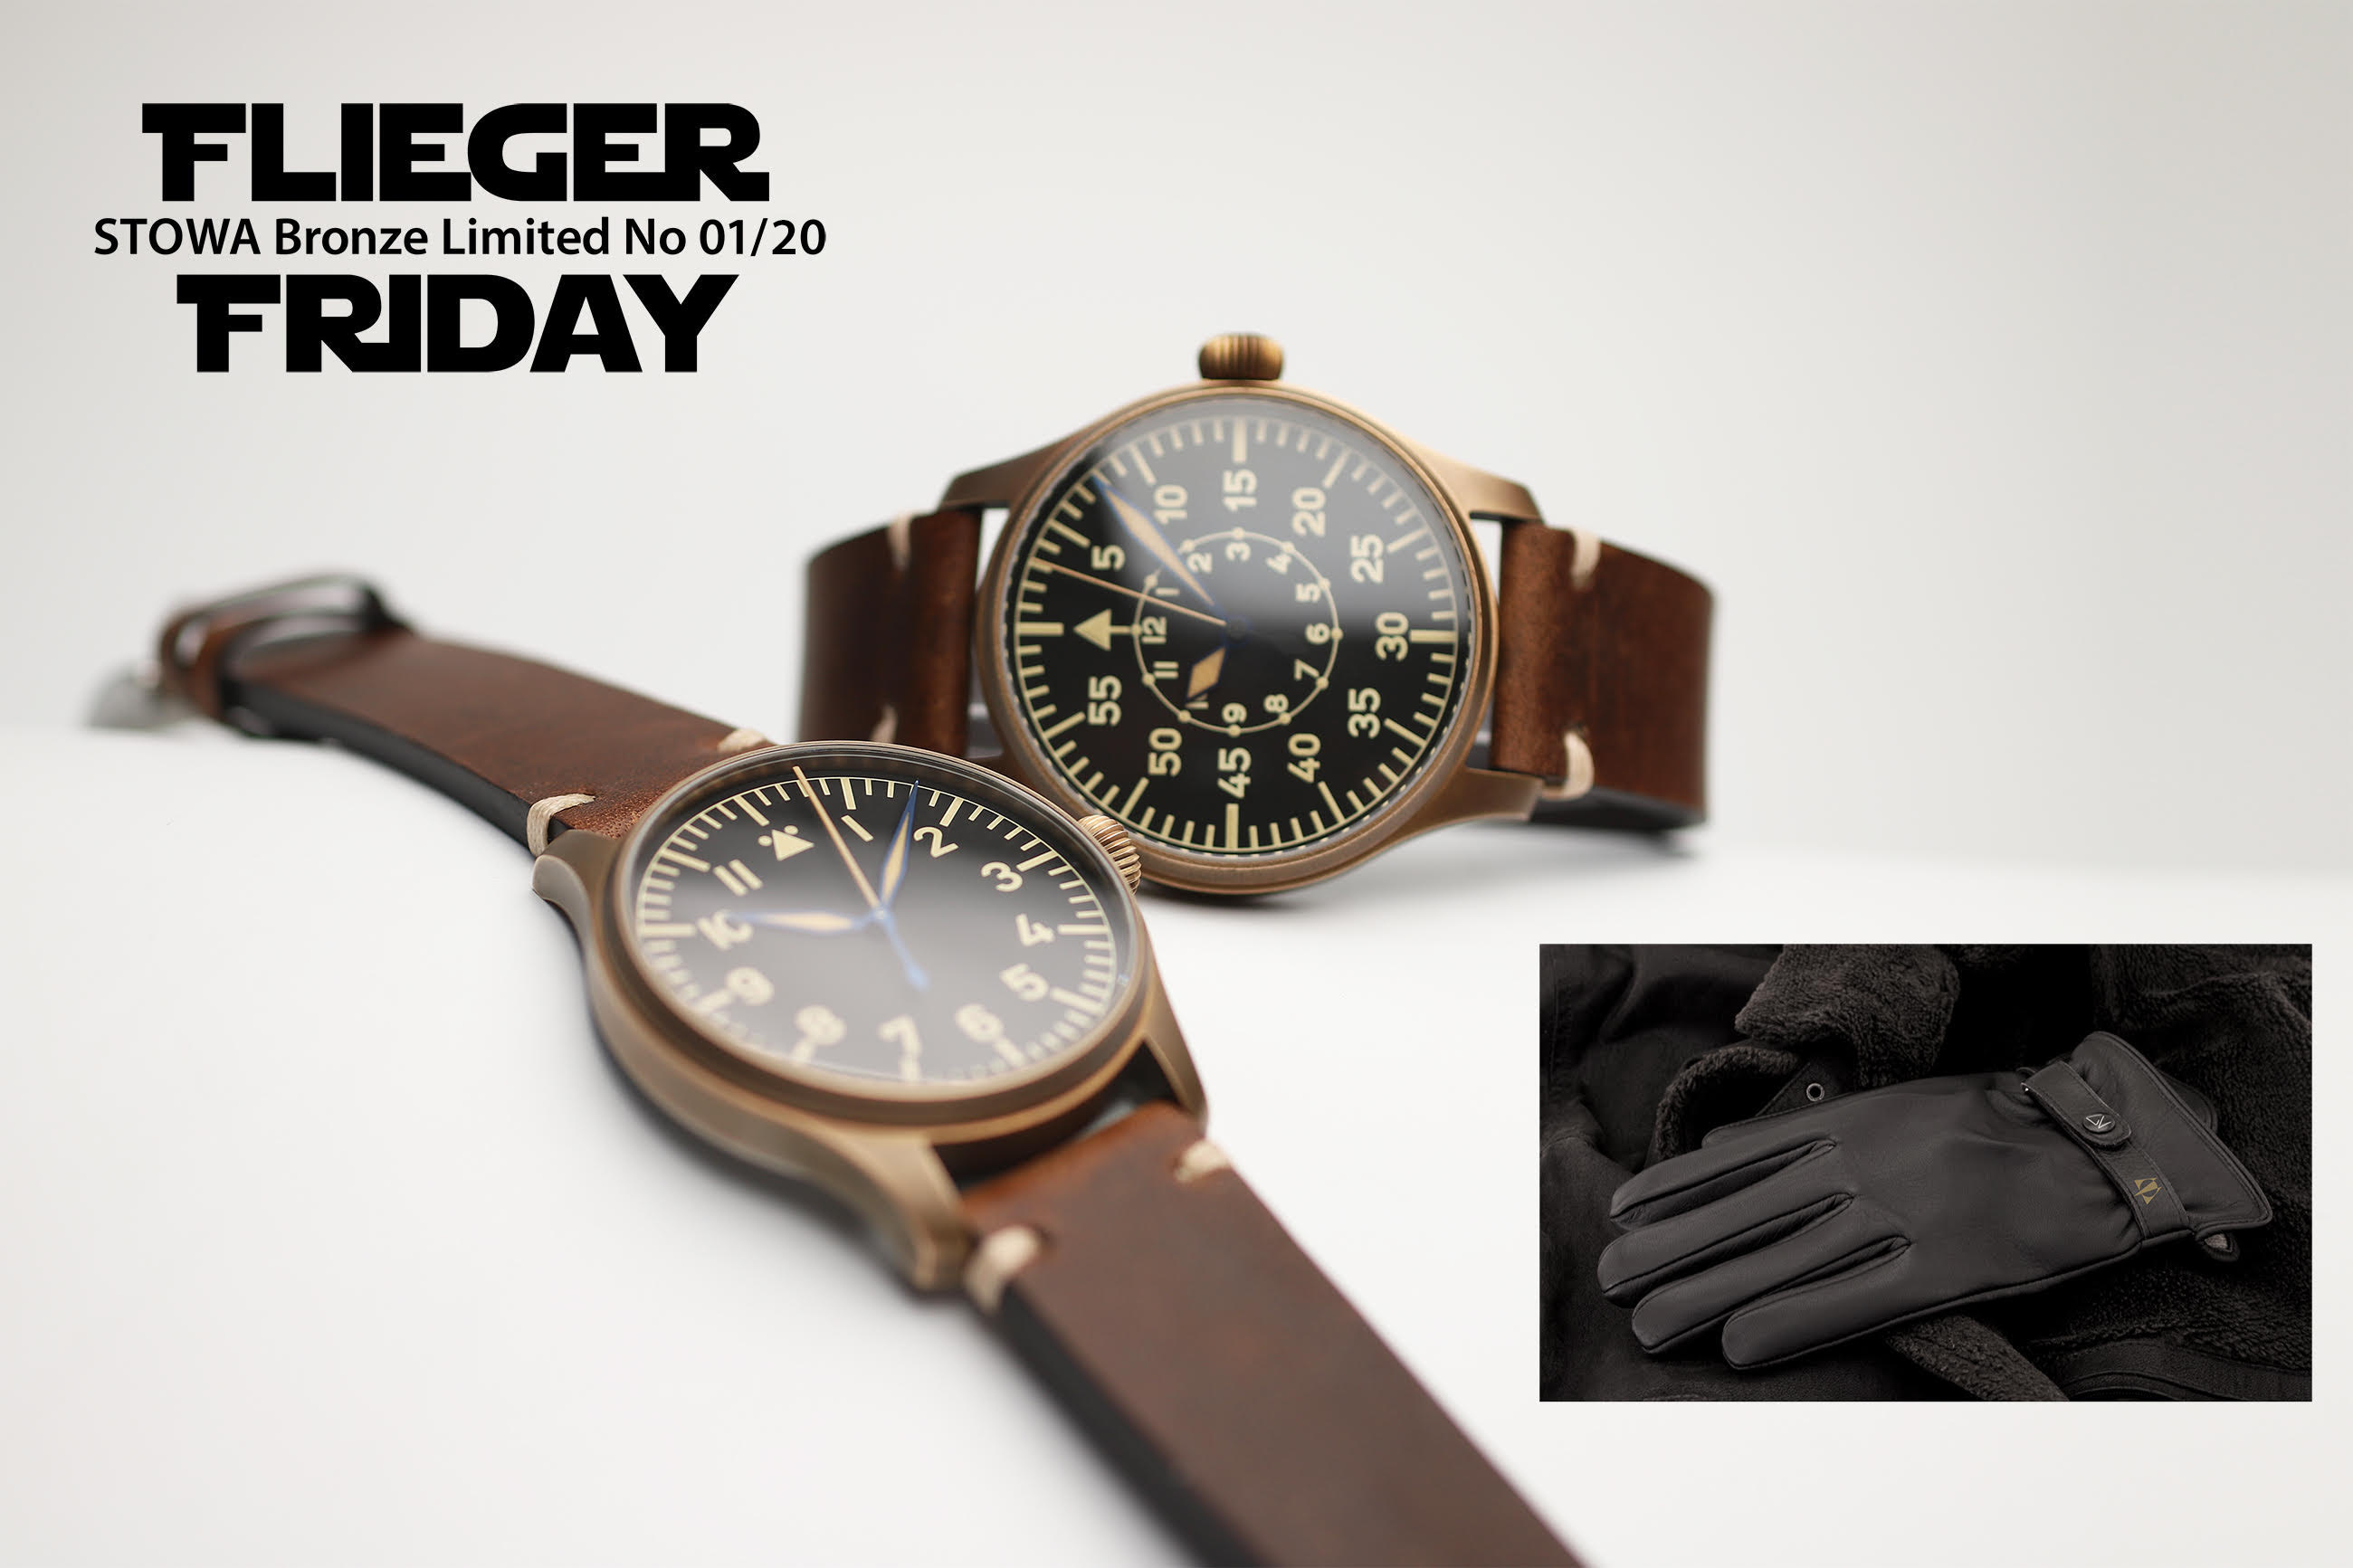 Stowa Flieger Friday Bronze Package